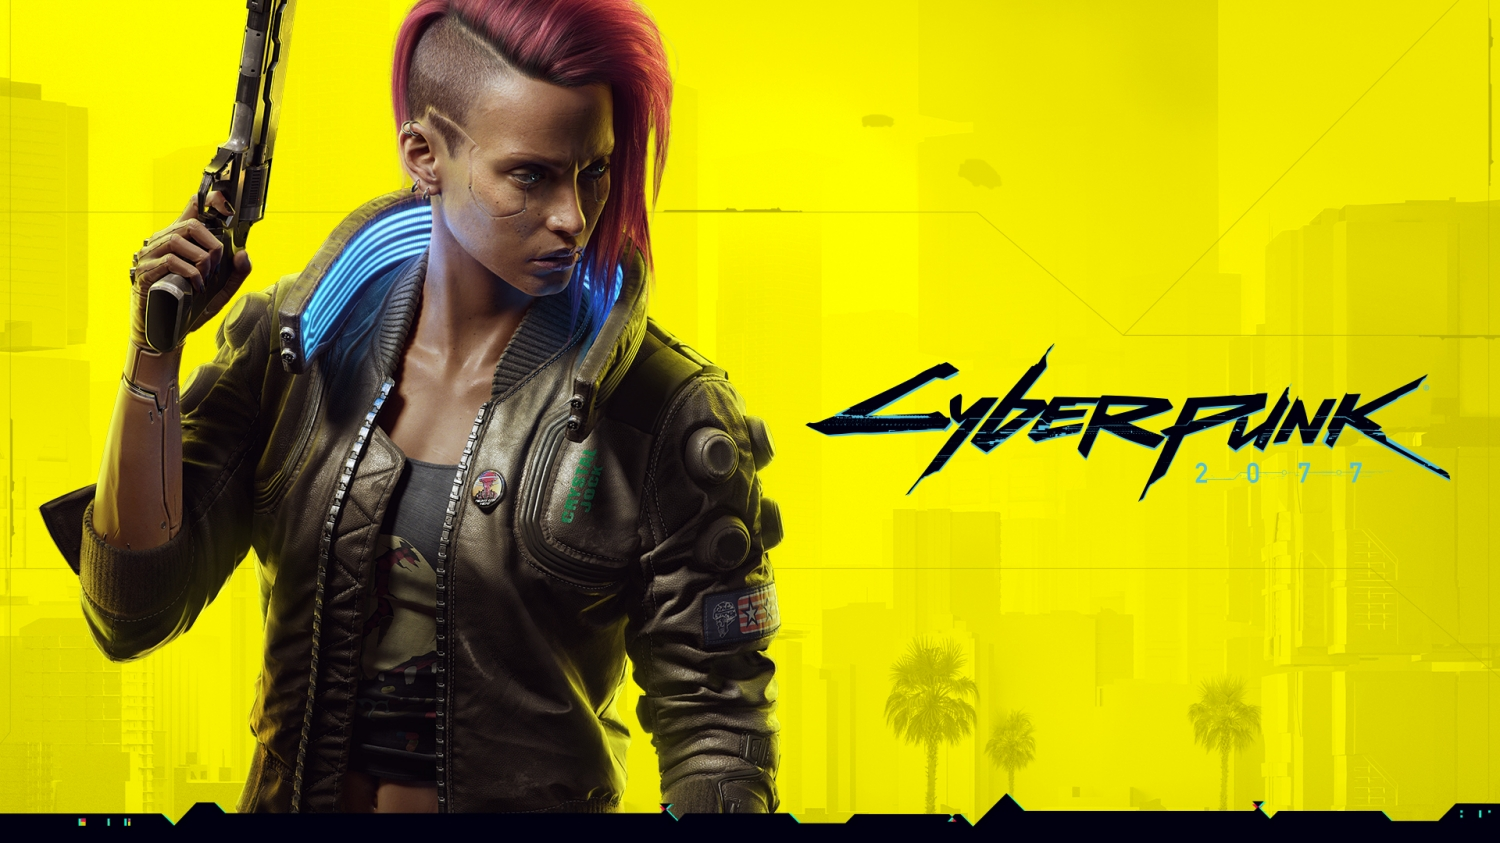 Cyberpunk 2077 Will Not Have Beam Tracing For AMD Radeon GPUs At Launch 02 |  TweakTown.com